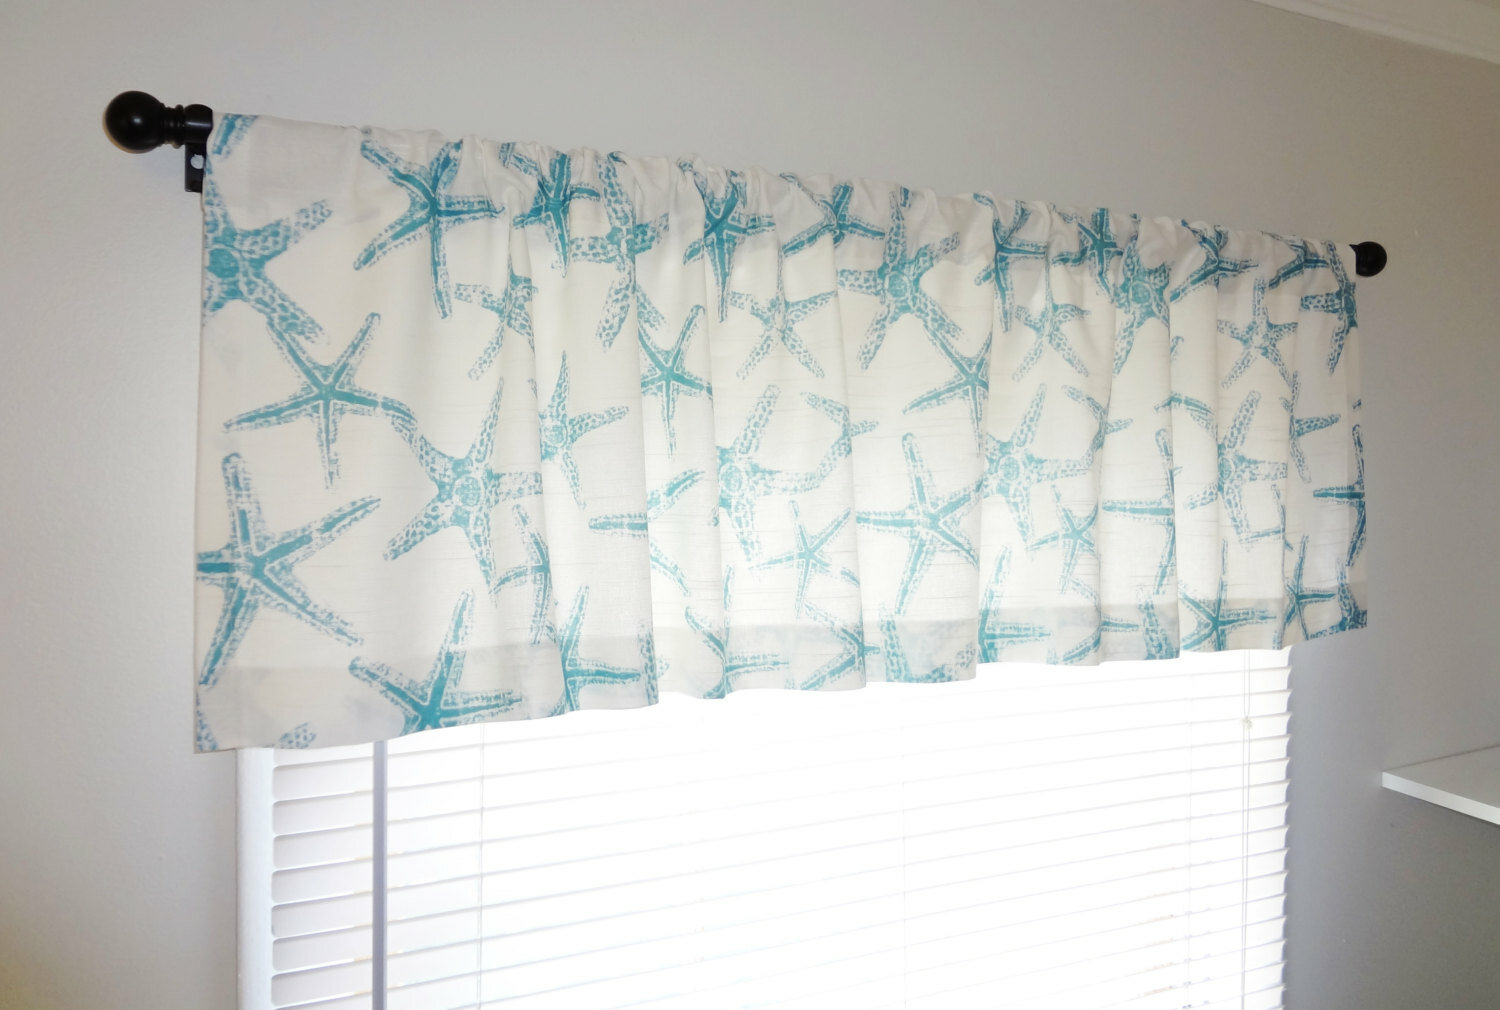 valance tropical size rare bluement themed online full kitchen valances print beautiful windowments cheap belize treatments beach drapes decor shades of enchanting window unforeseen seashell popular mermaid nautical curtains curtain and coastal lake